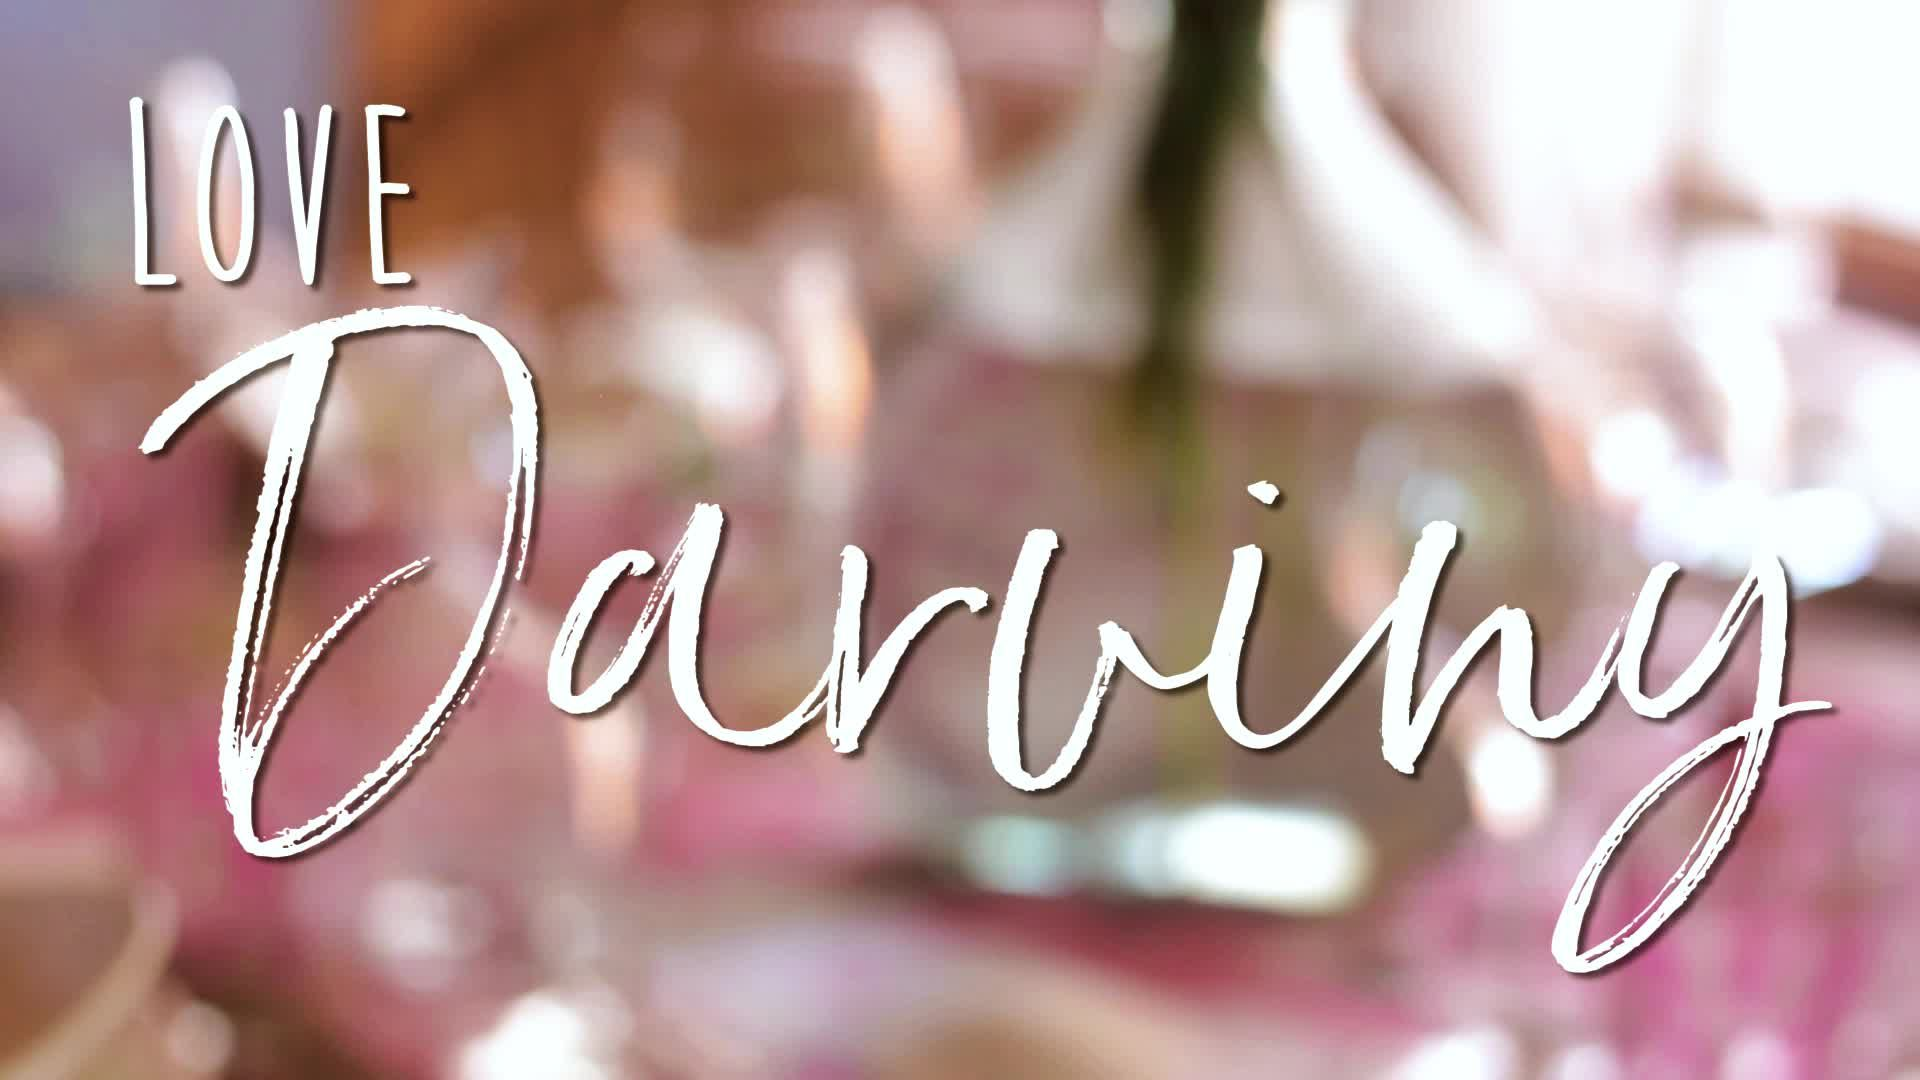 The Love, Darviny Show - Off to the Redlands